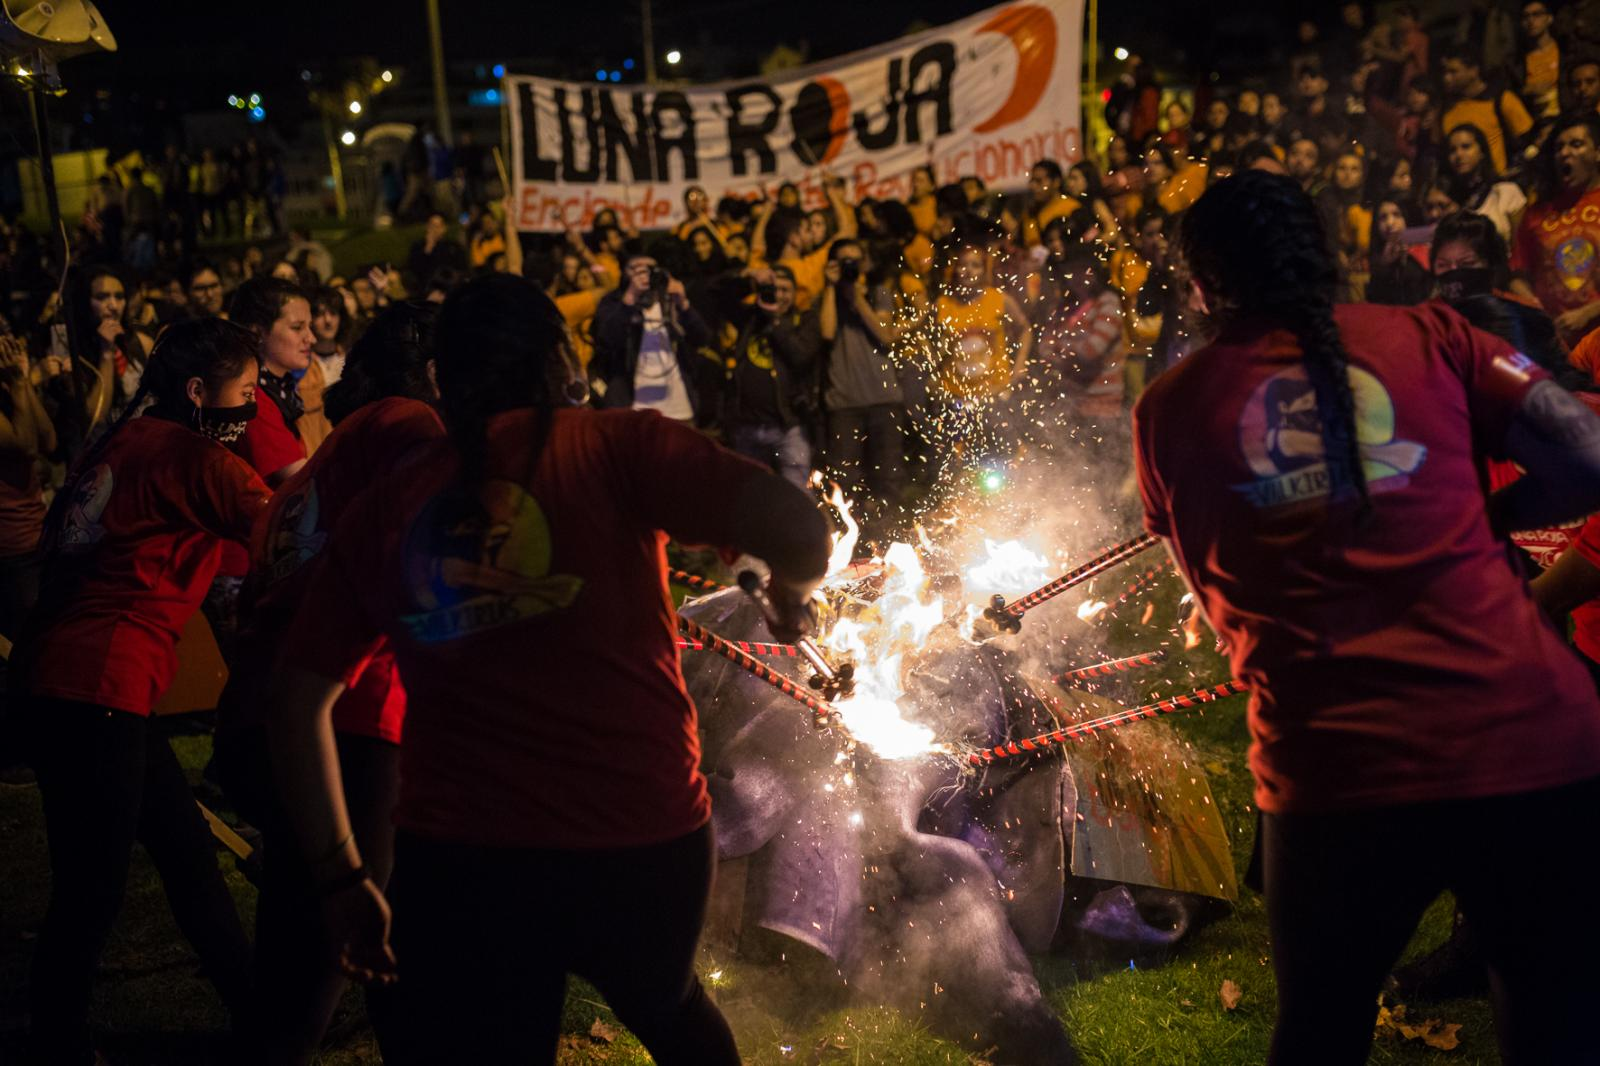 Women from organization Luna Roja burn dolls on the night of June 25, 2017 in El Arbolito Park, representing the state in claiming for the cases of femicides that have gone unpunished. Quito, Ecuador.